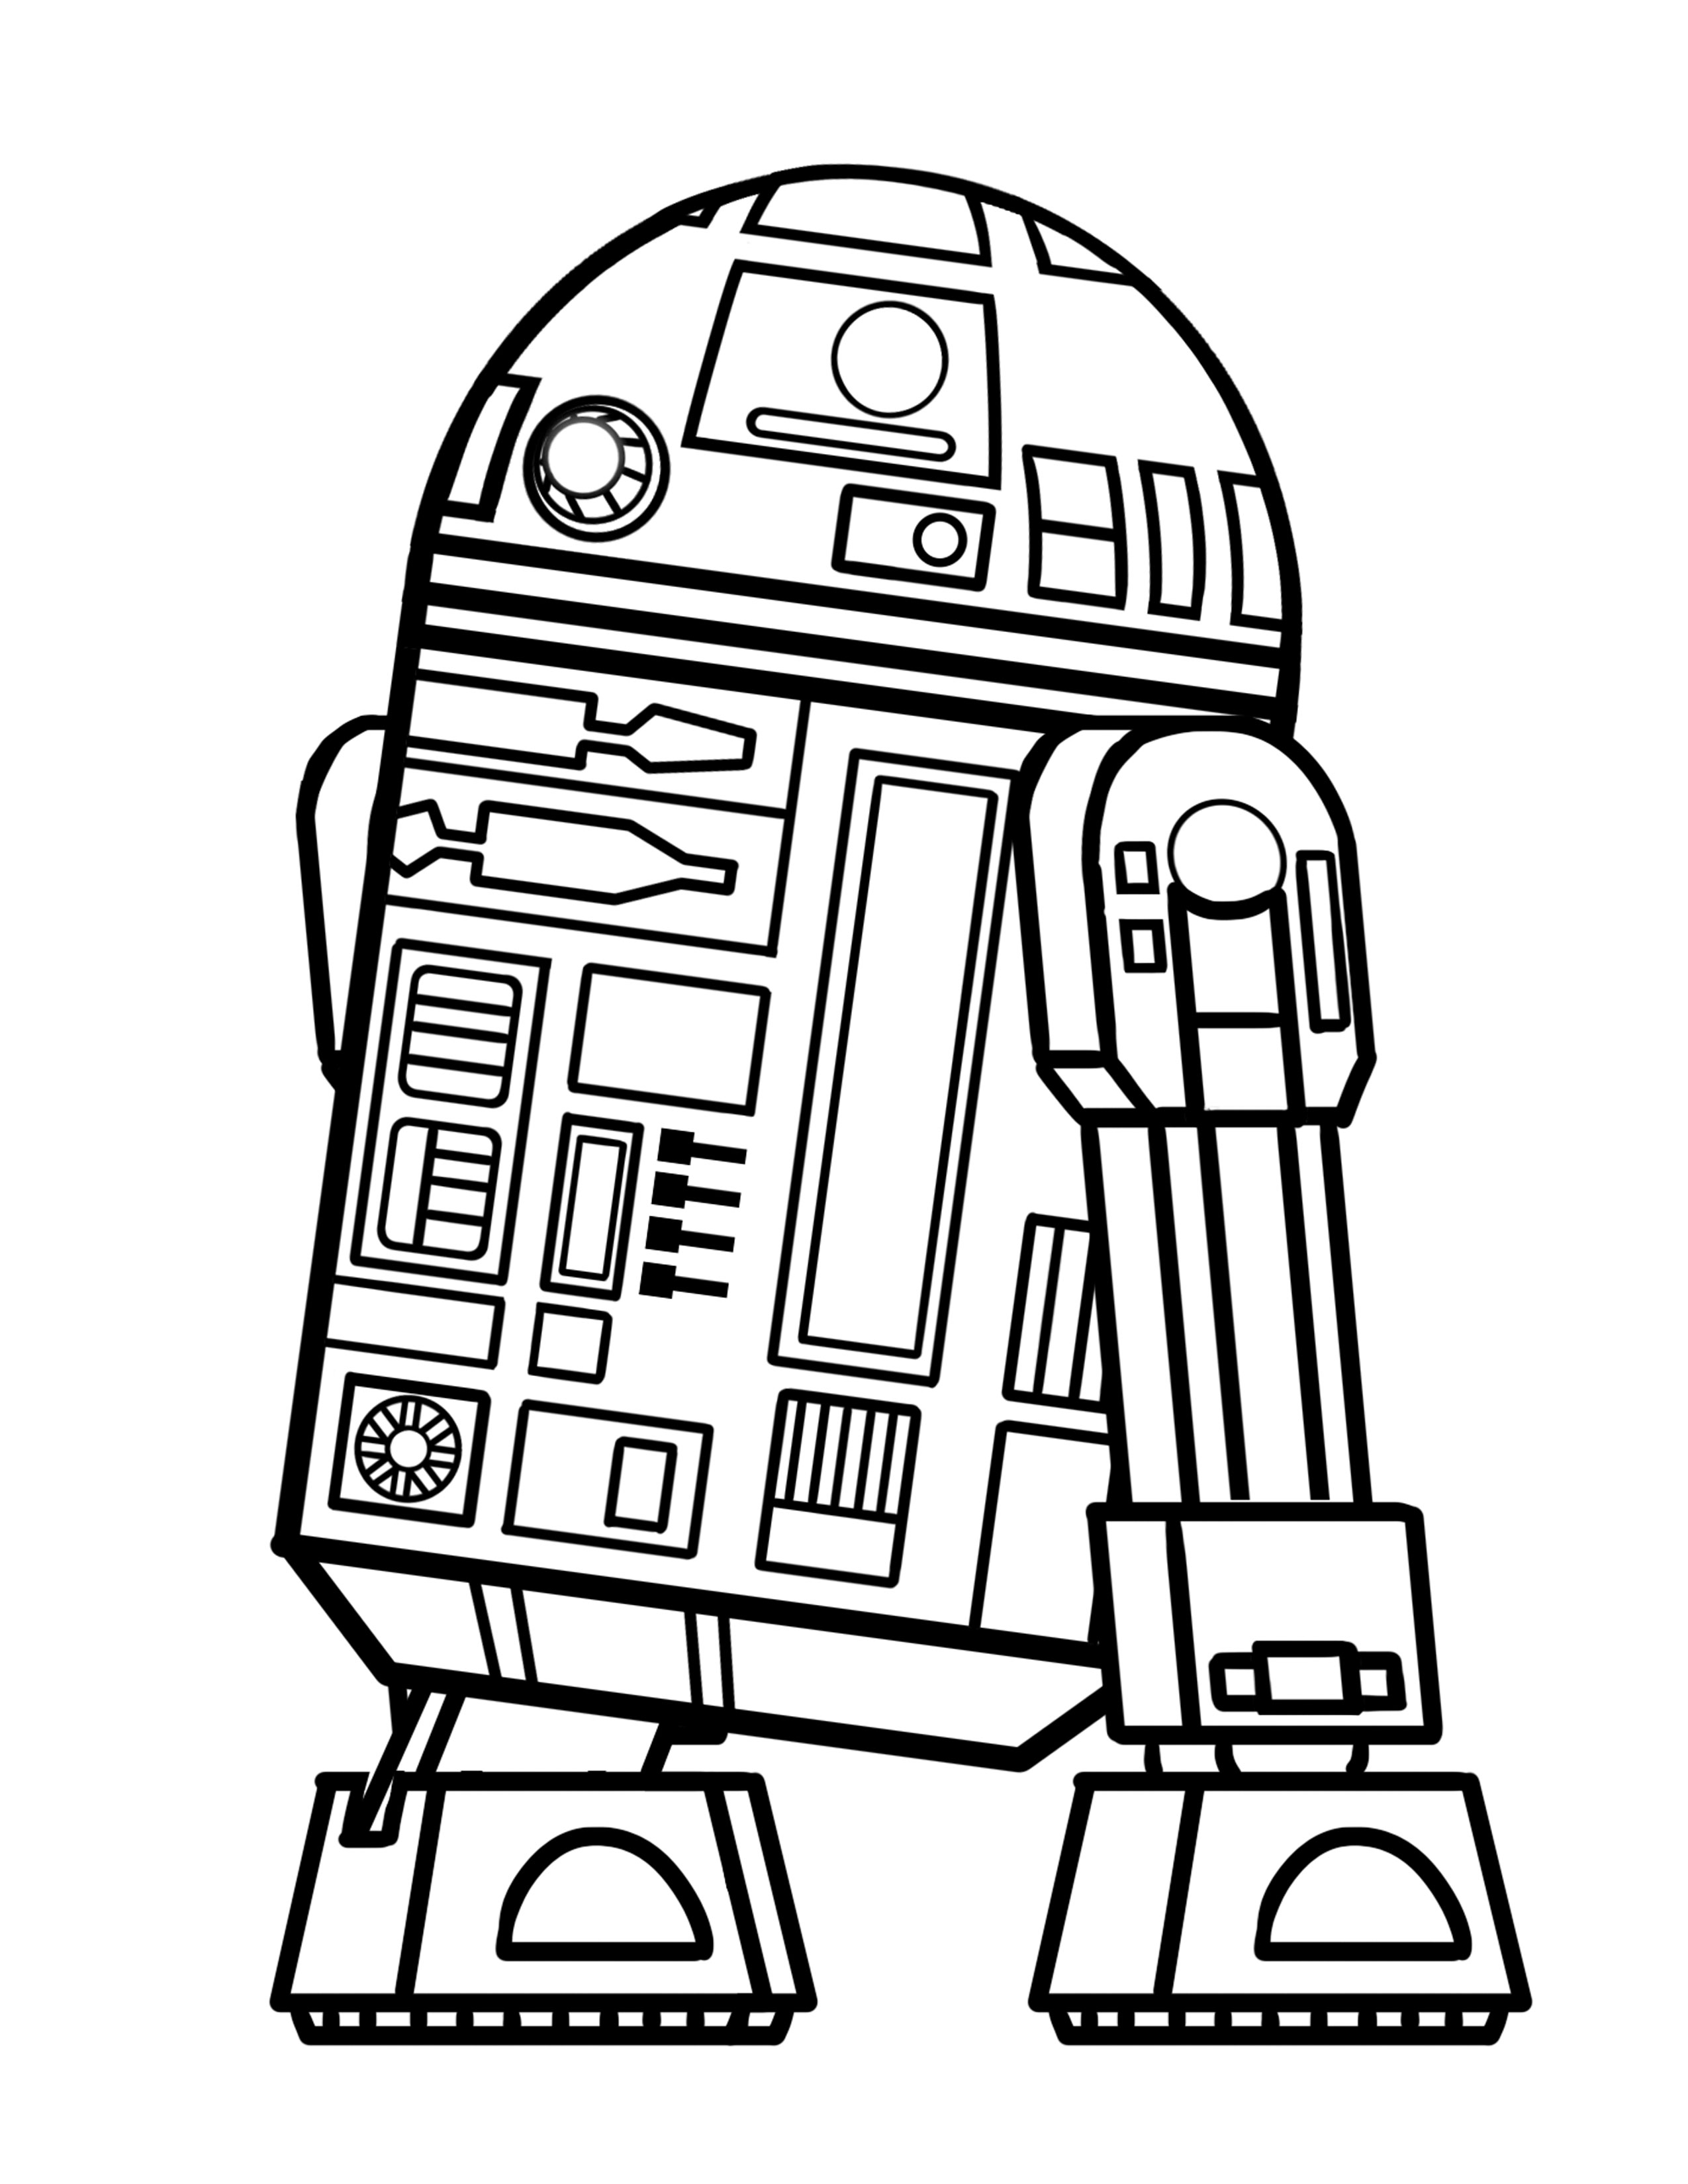 coloring pages star wars fashionably nerdy family star wars day may the fourth coloring pages star wars